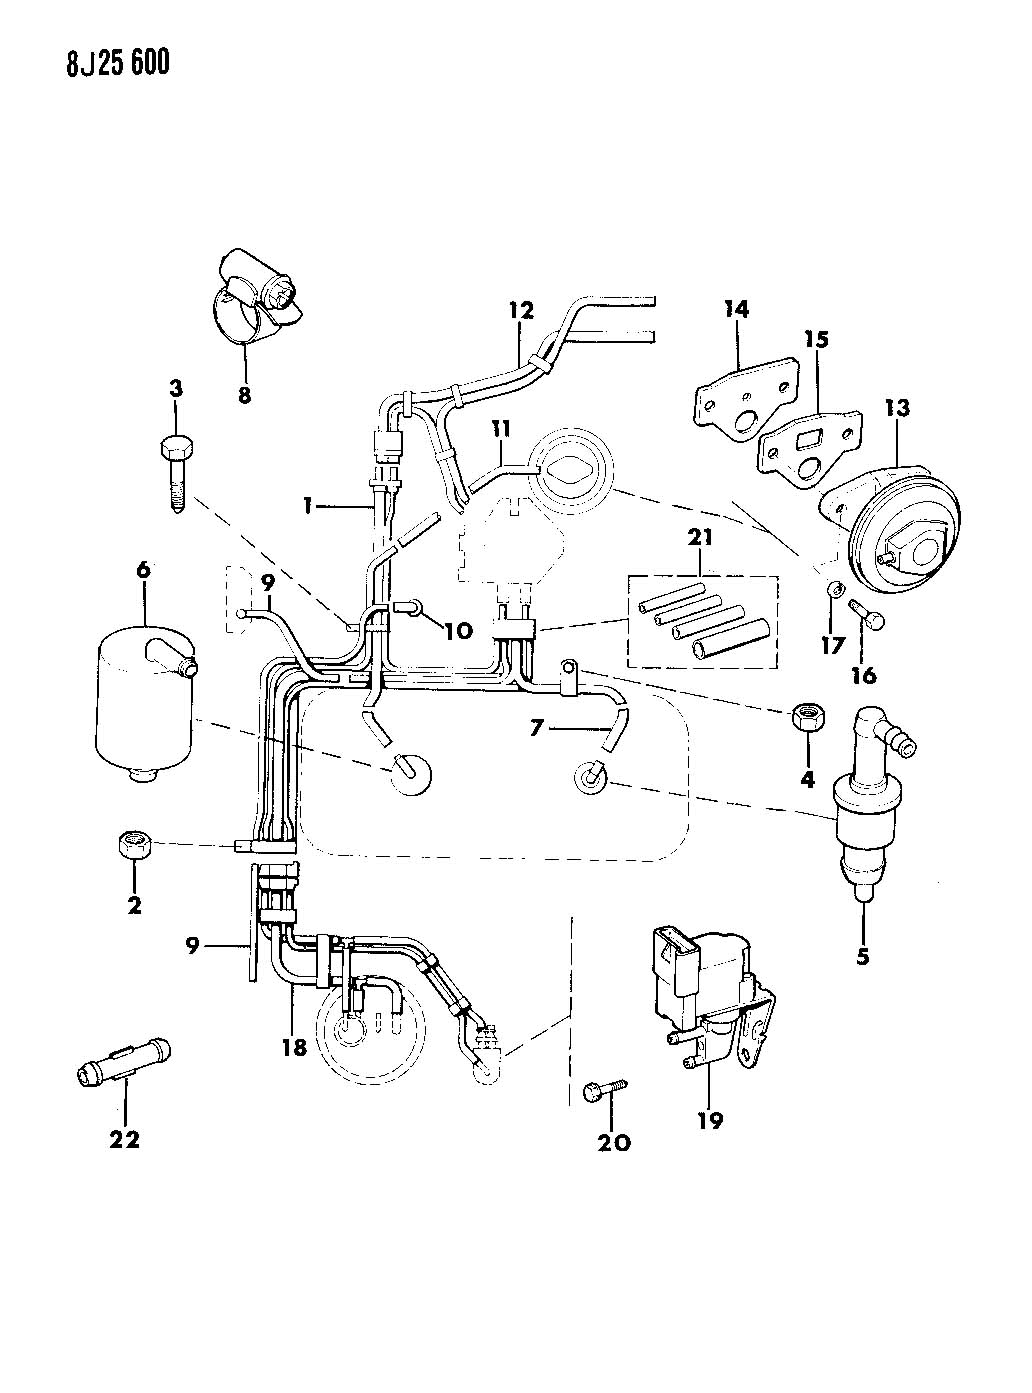 1990 jeep wrangler dash wiring diagram honeywell t6360 room thermostat parts and accessories imageresizertool com